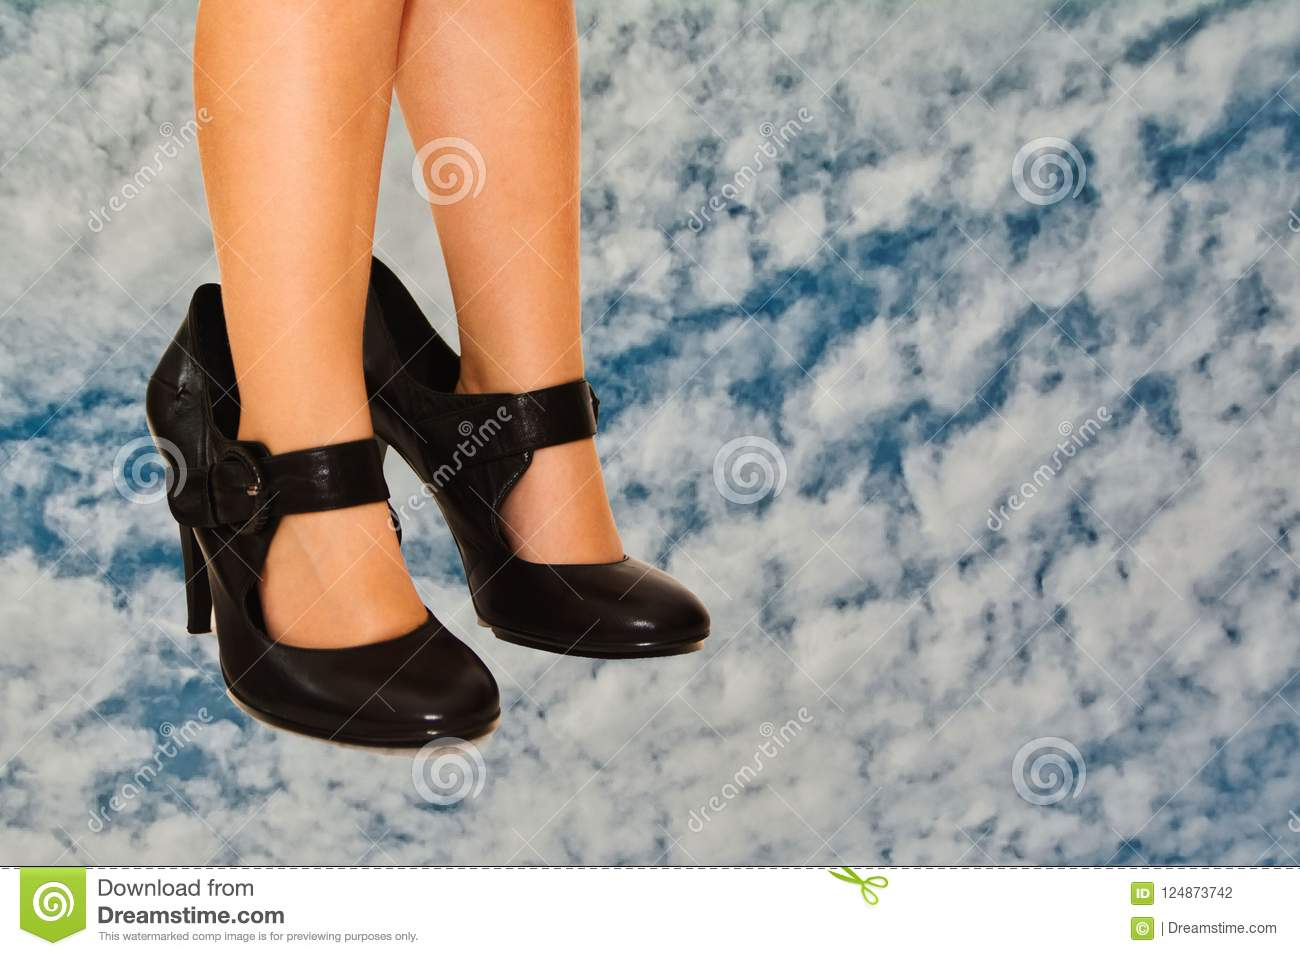 Small bare feet in big shoes